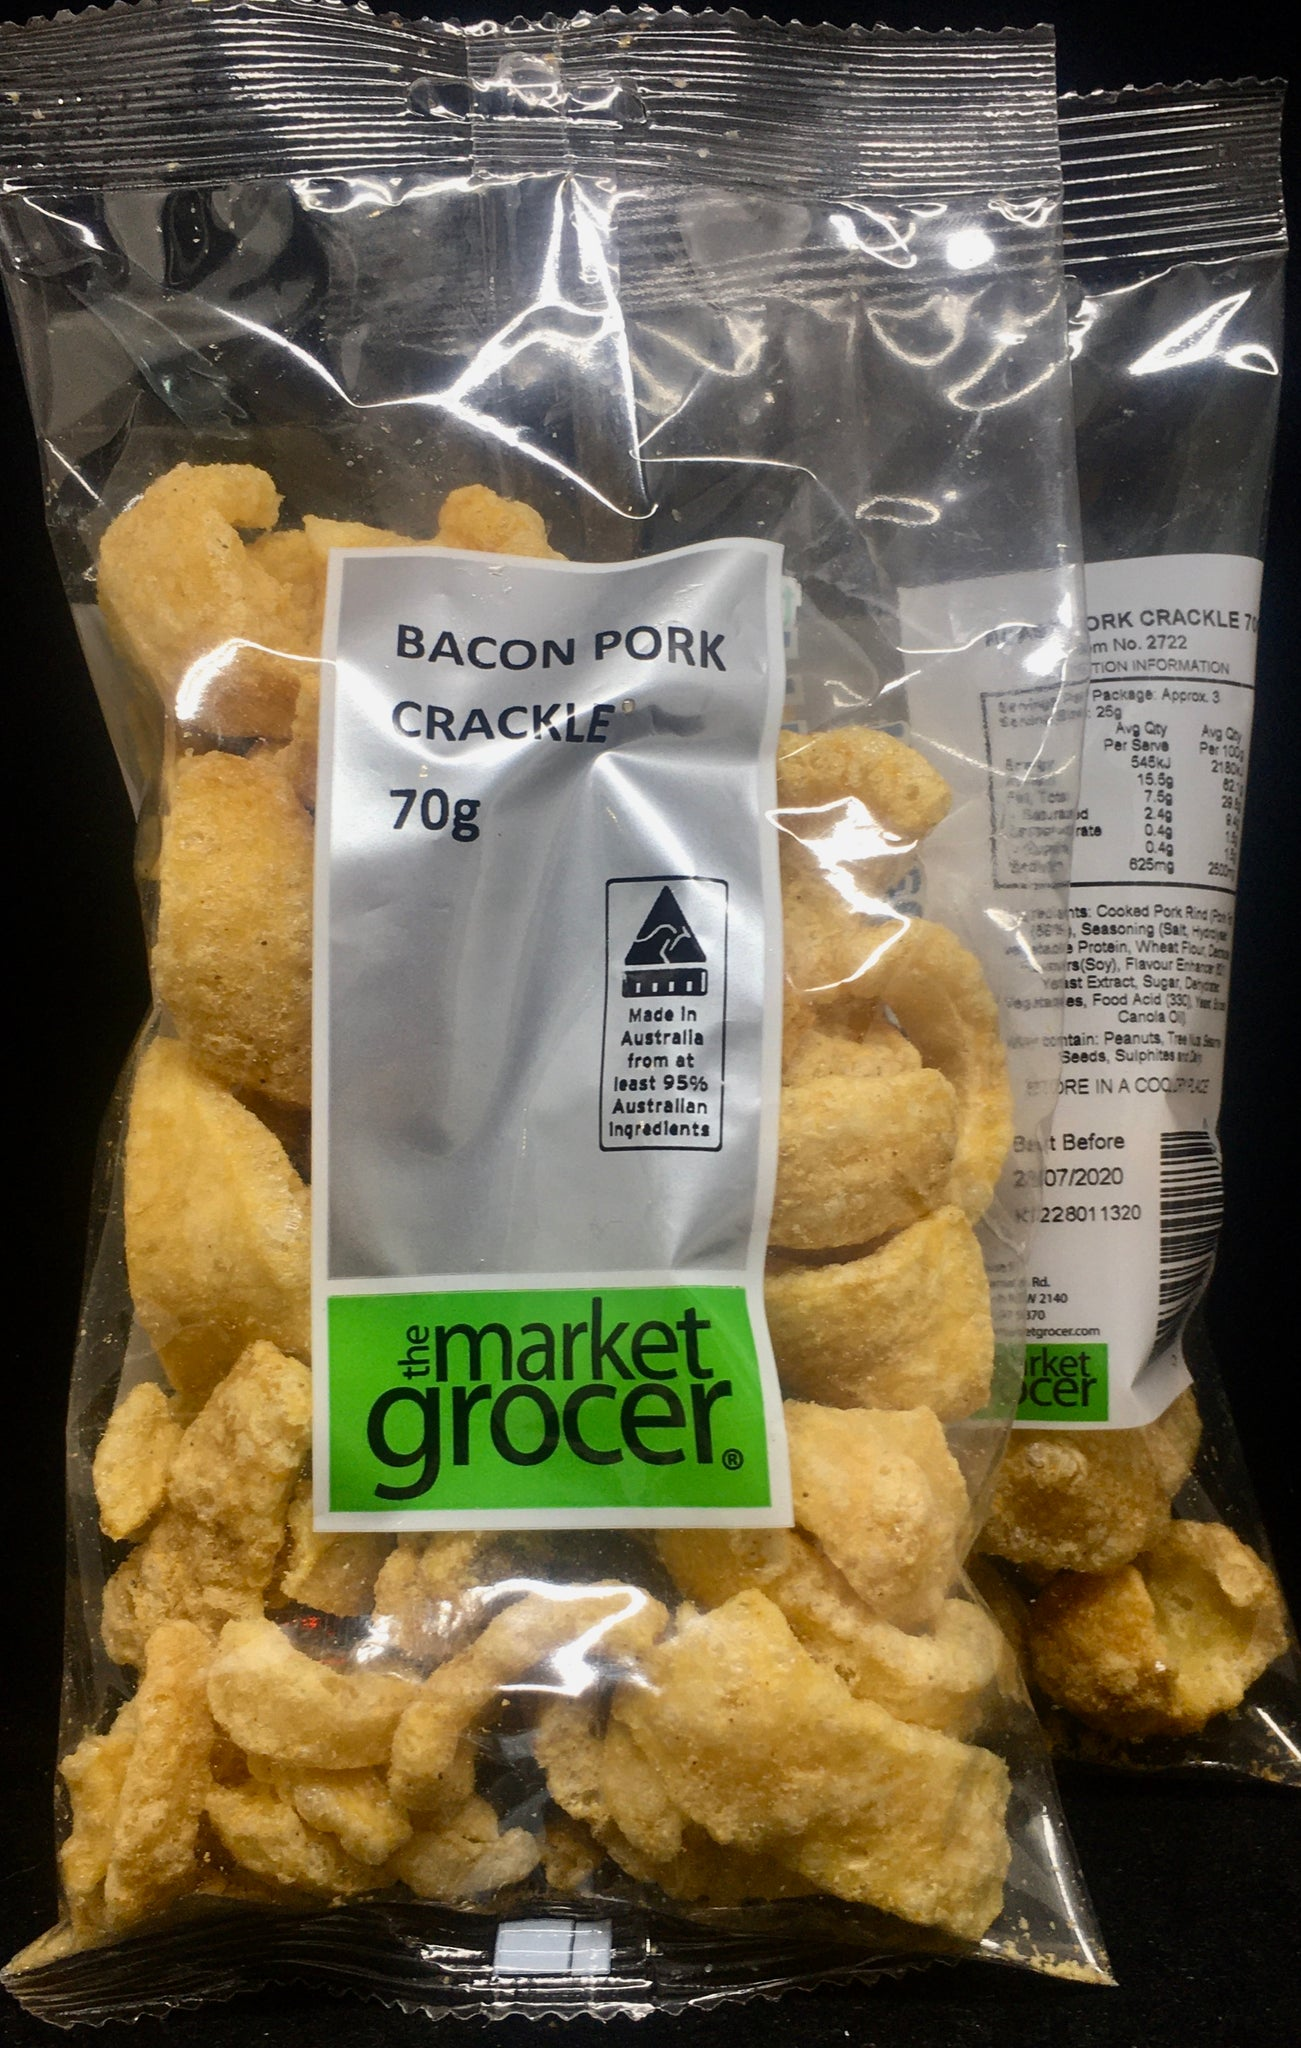 The Market Grocer - Bacon Pork Crackle